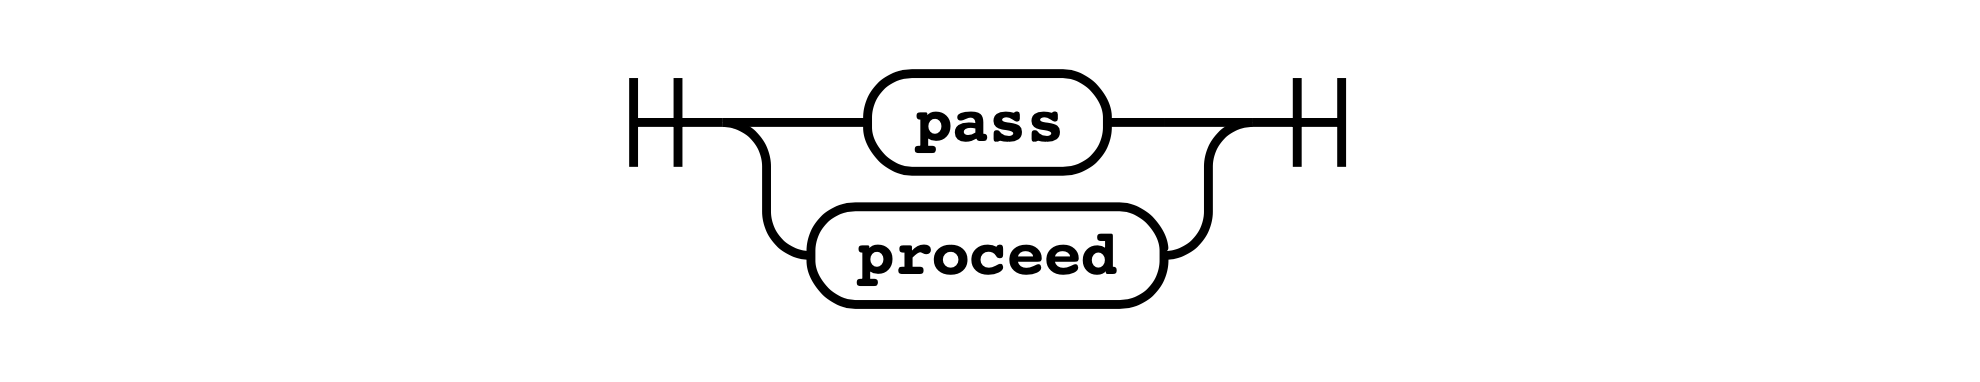 pass_stmt_modified